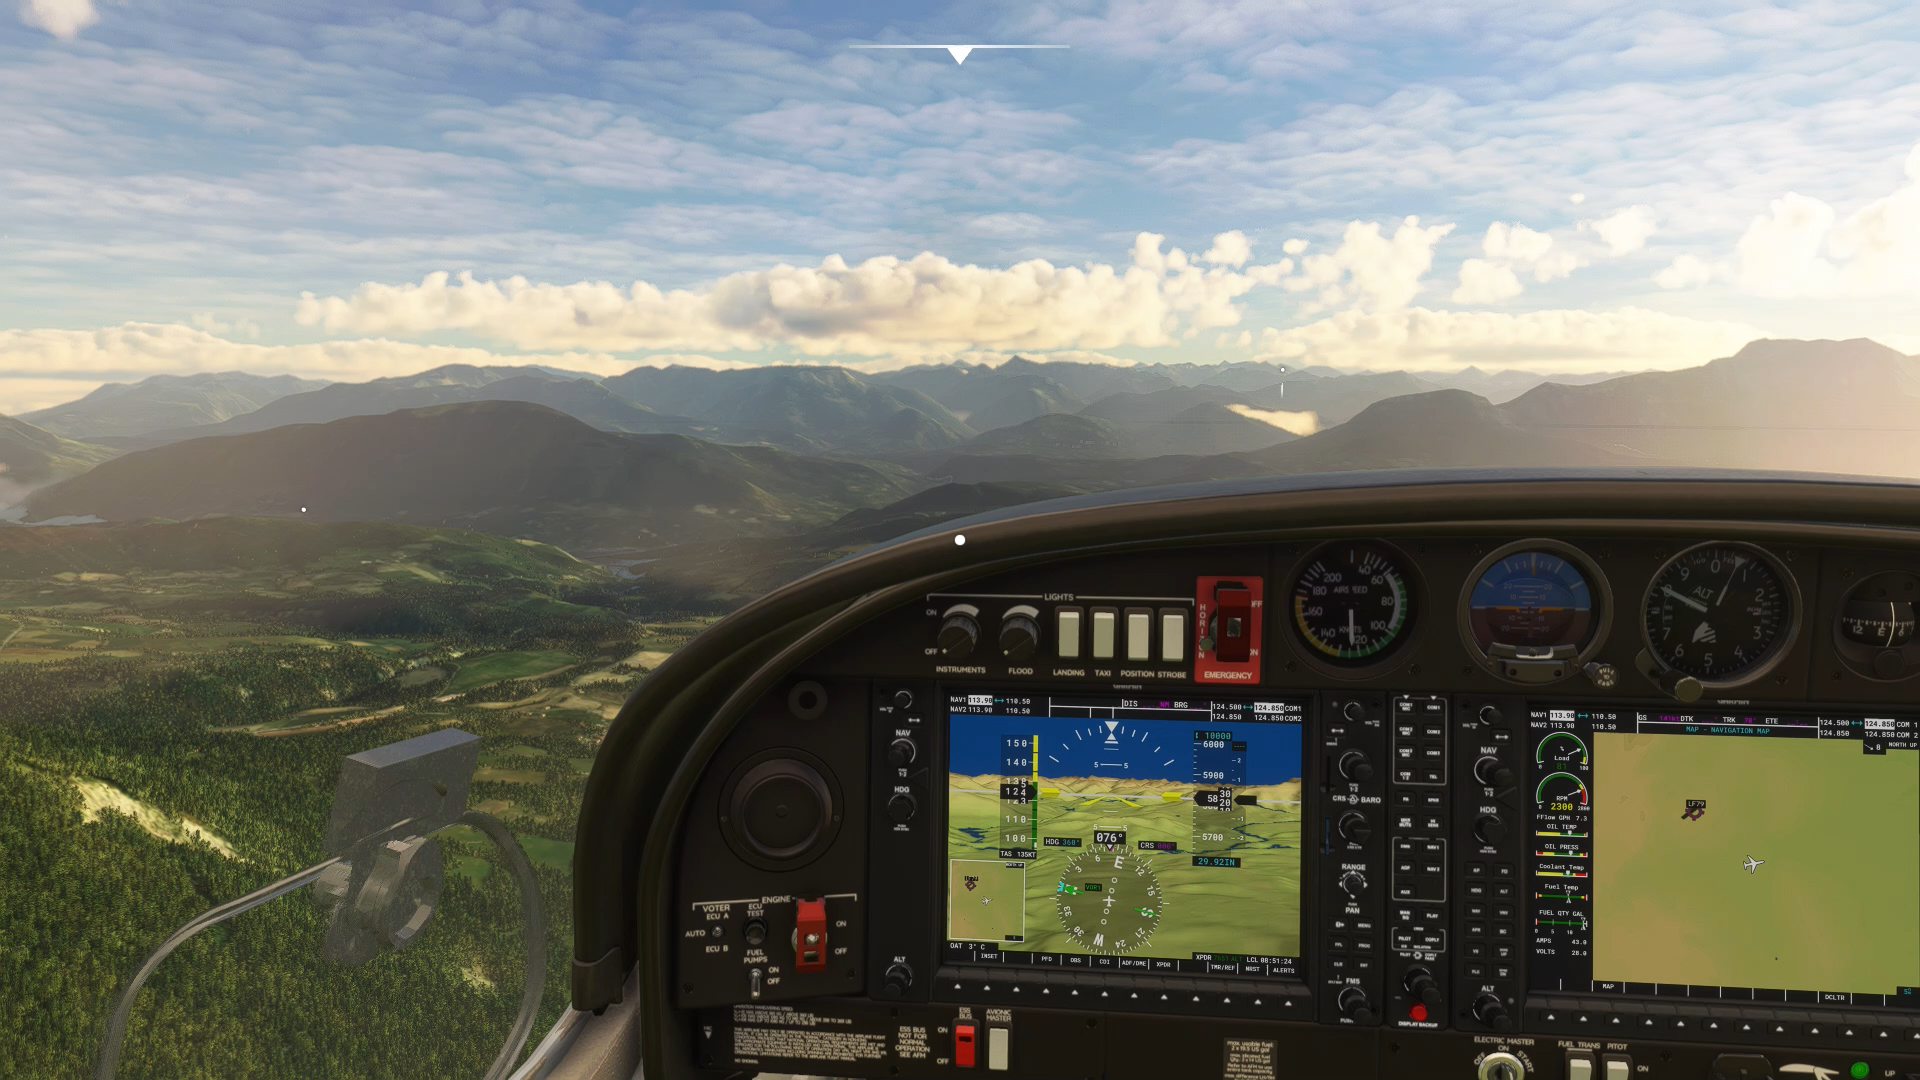 A screenshot showing the view from inside a small aircraft.